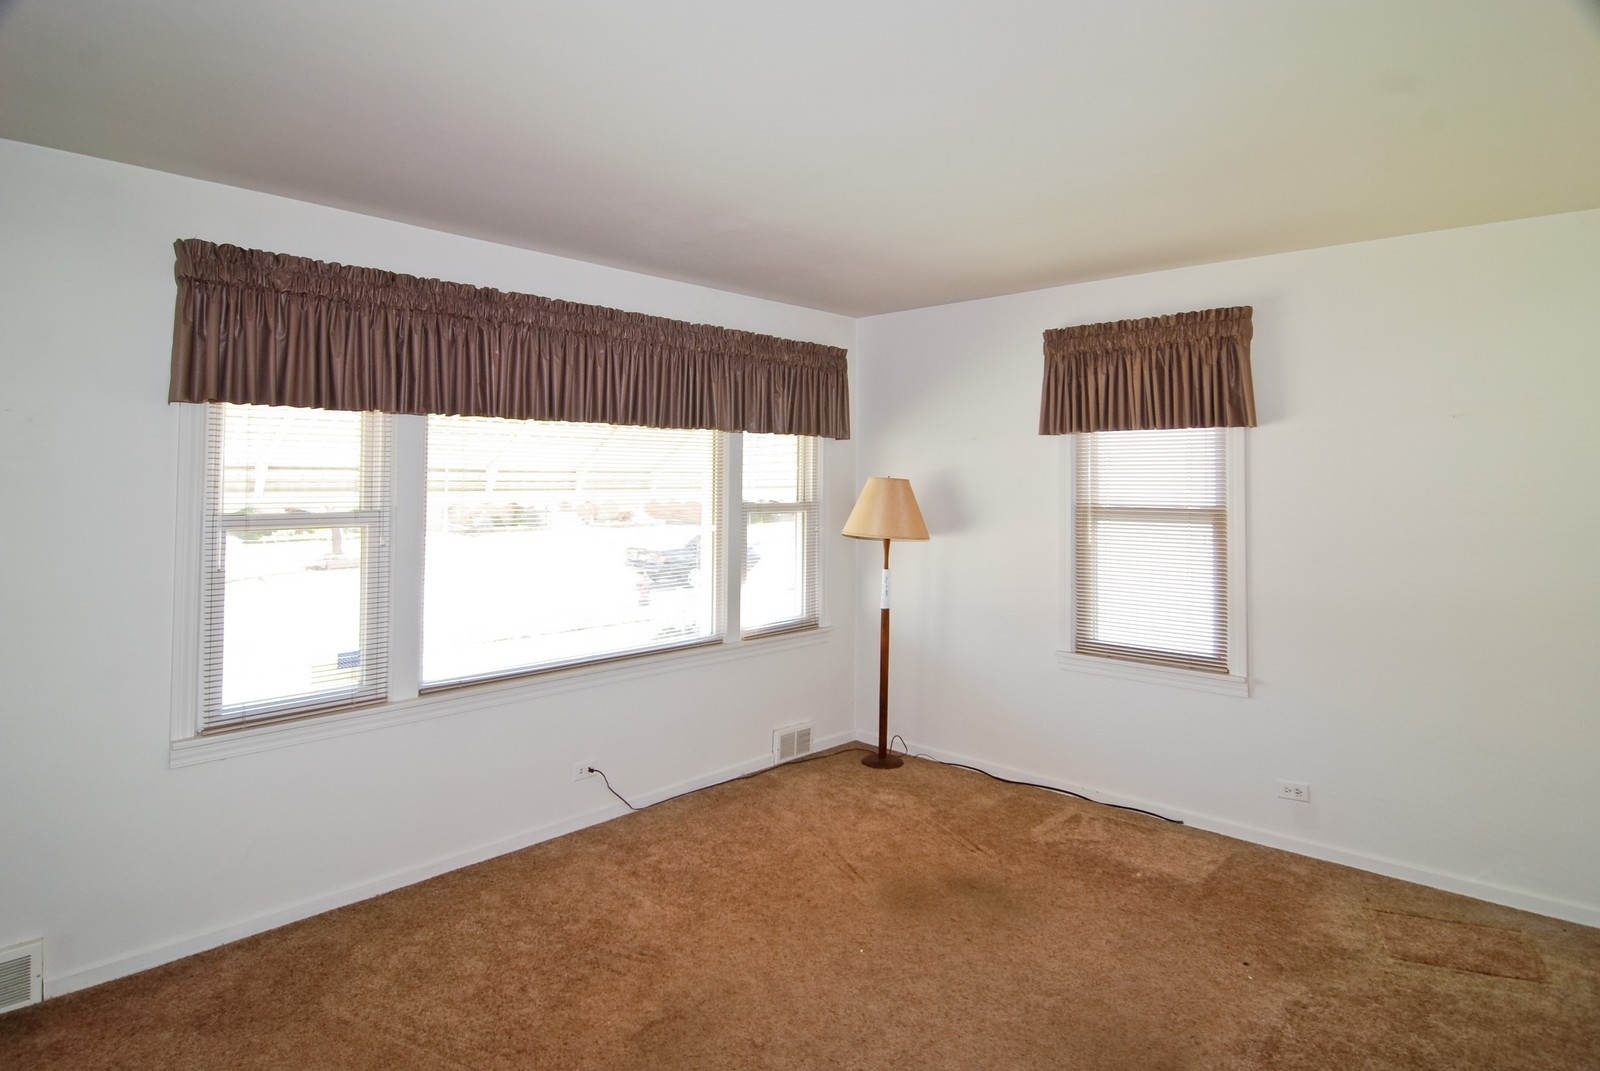 Real Estate Photography - 1526 Hillside Ave, Berkeley, IL, 60163 - Living Room